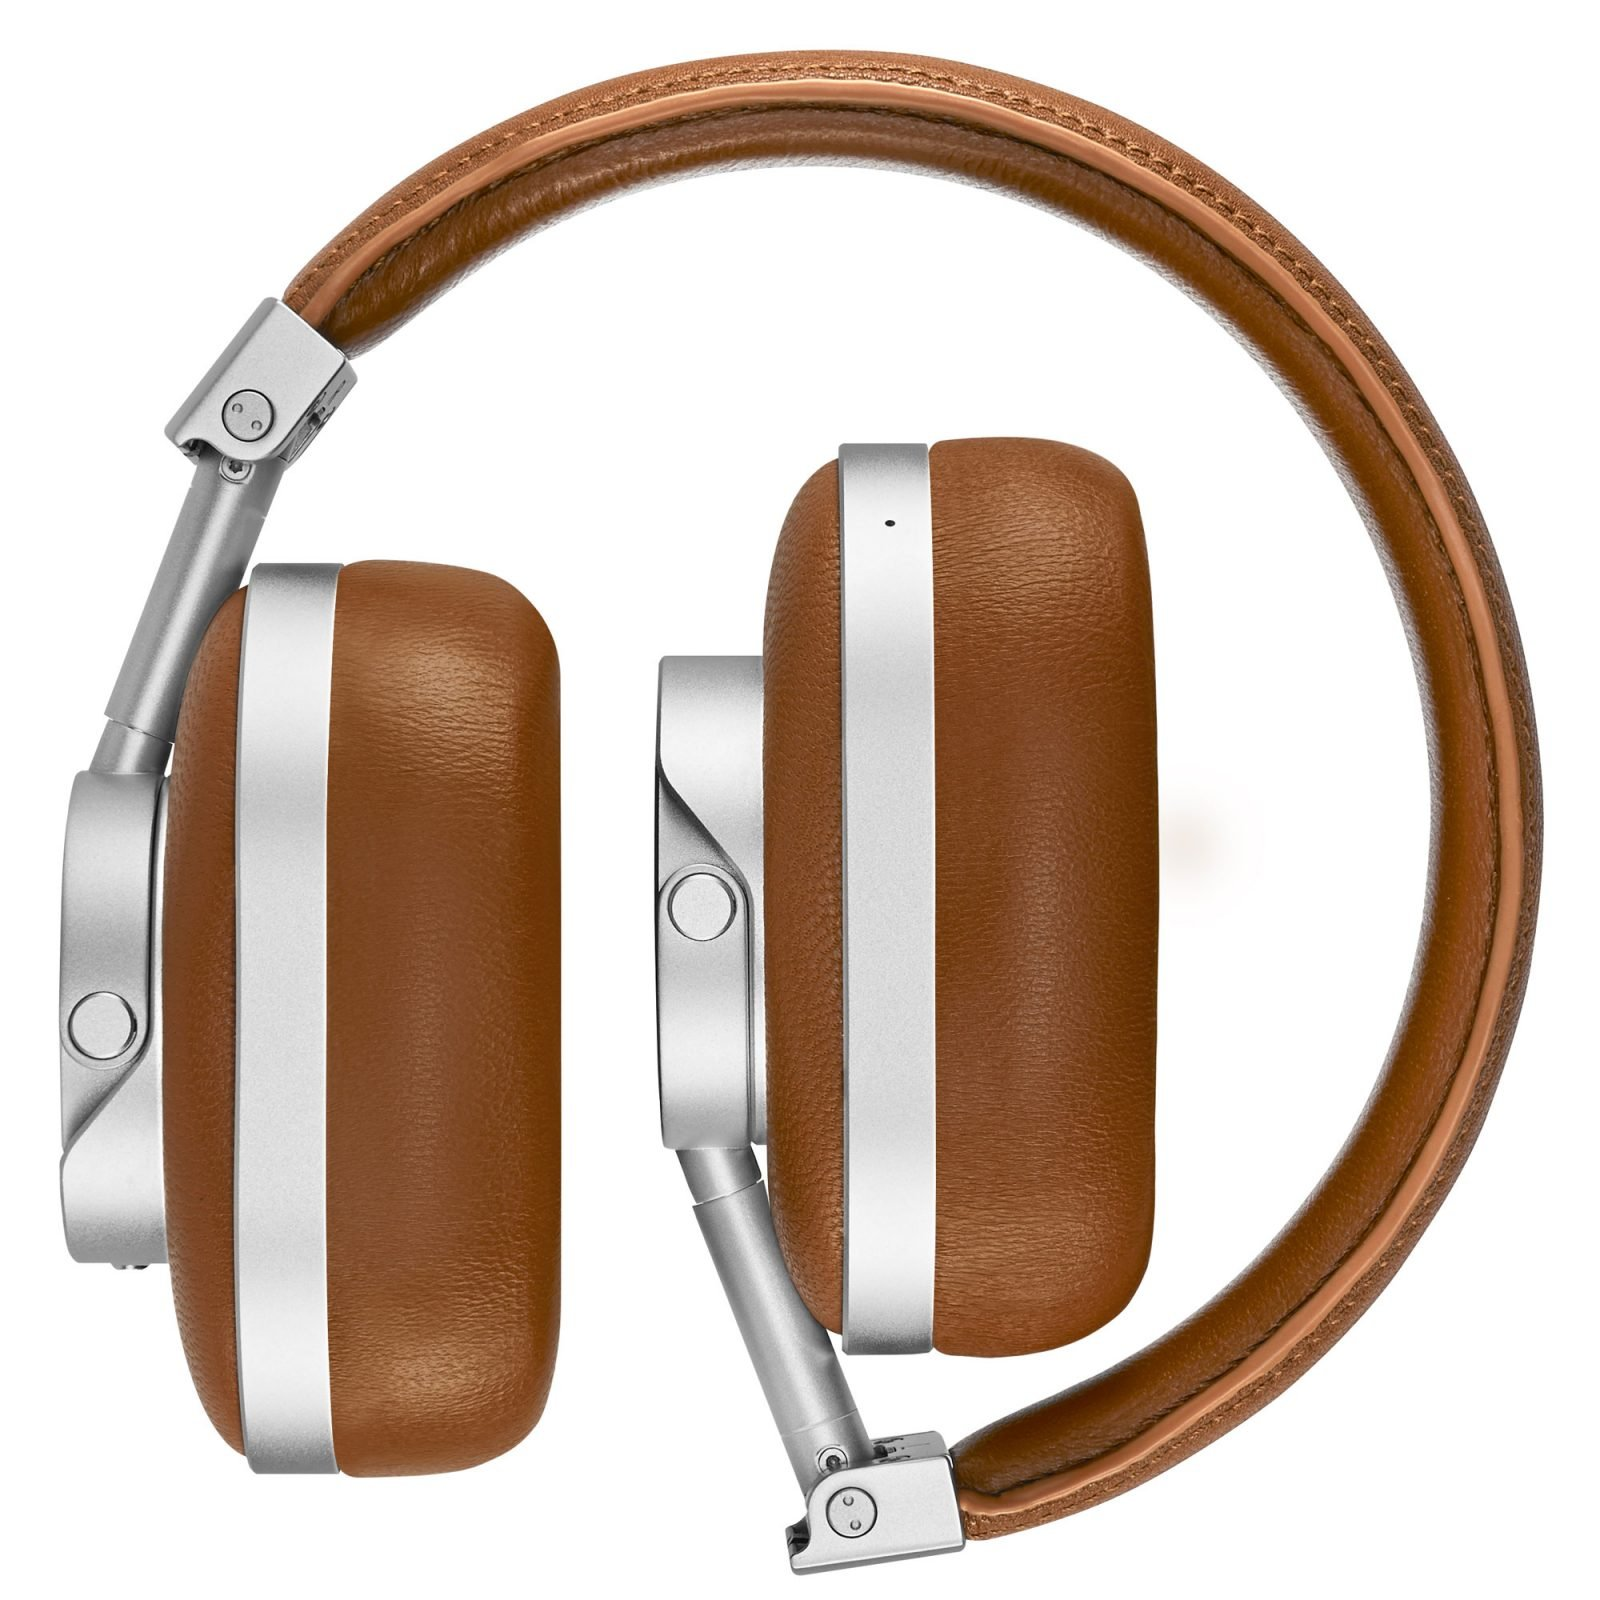 mw60-wireless-over-ear-headphones-brown-silver-6